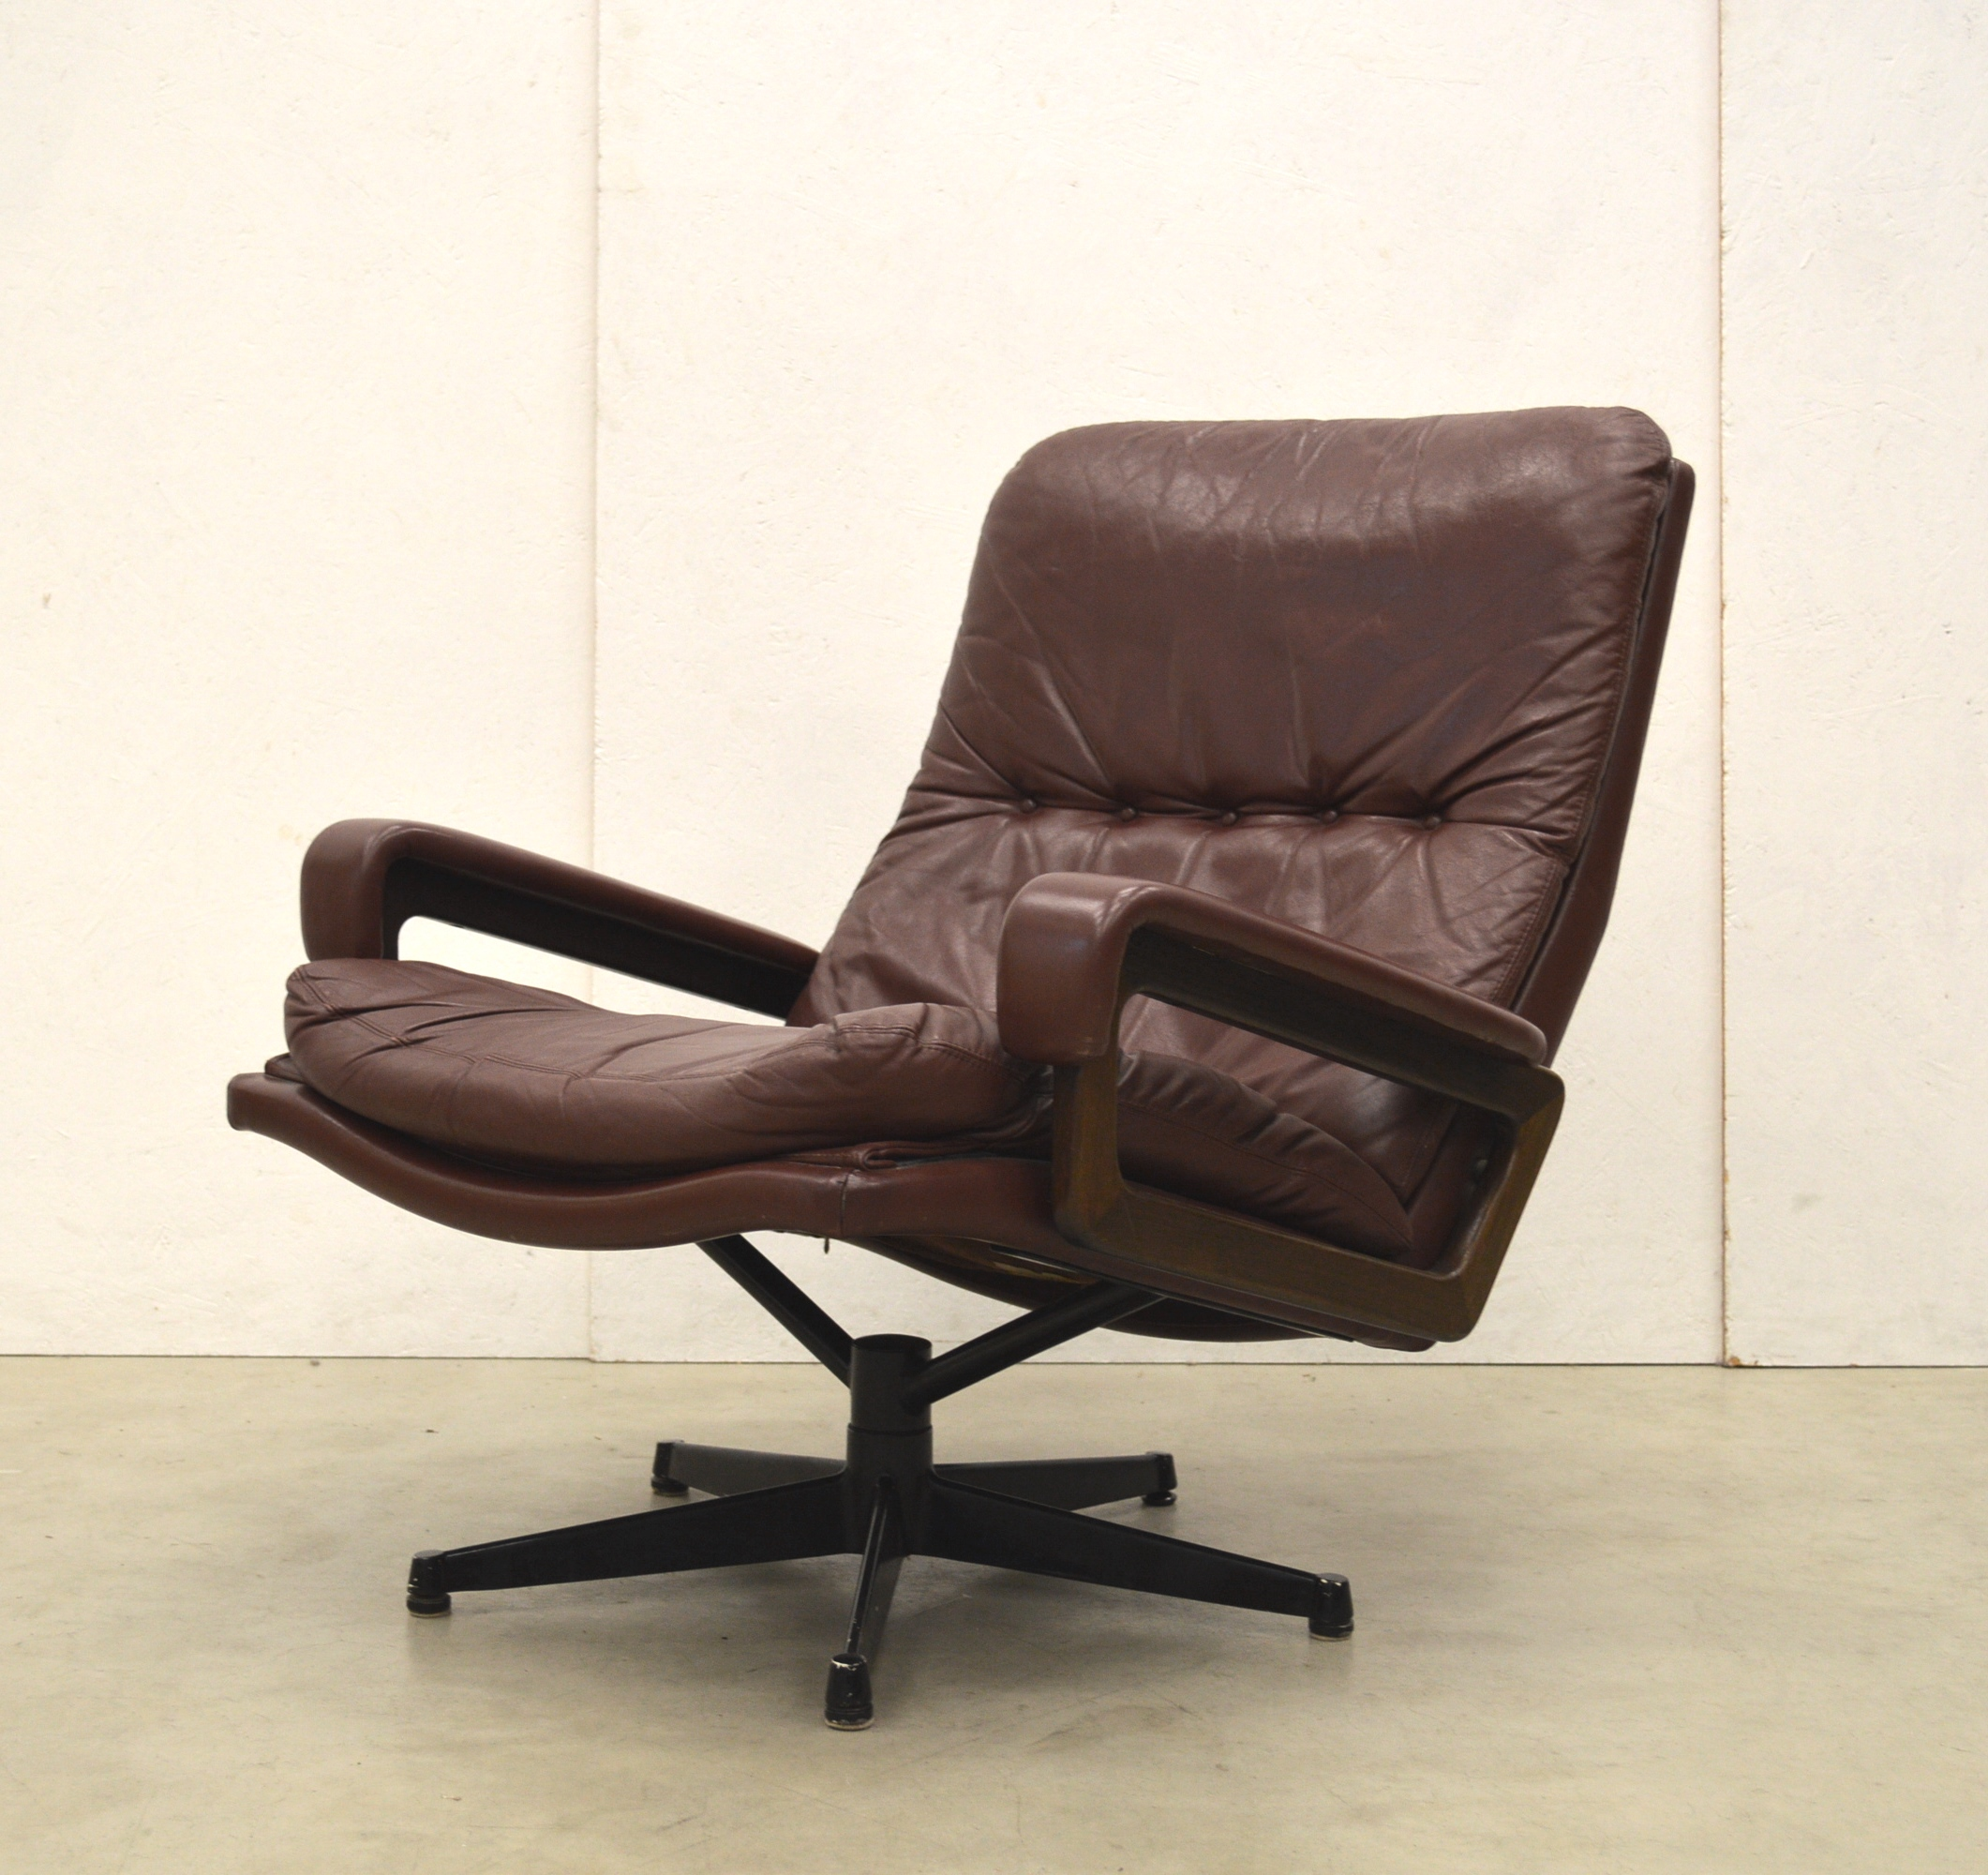 King Chair Sessel Strässle King Chair By André Vandenbeuck Burgundy Edition